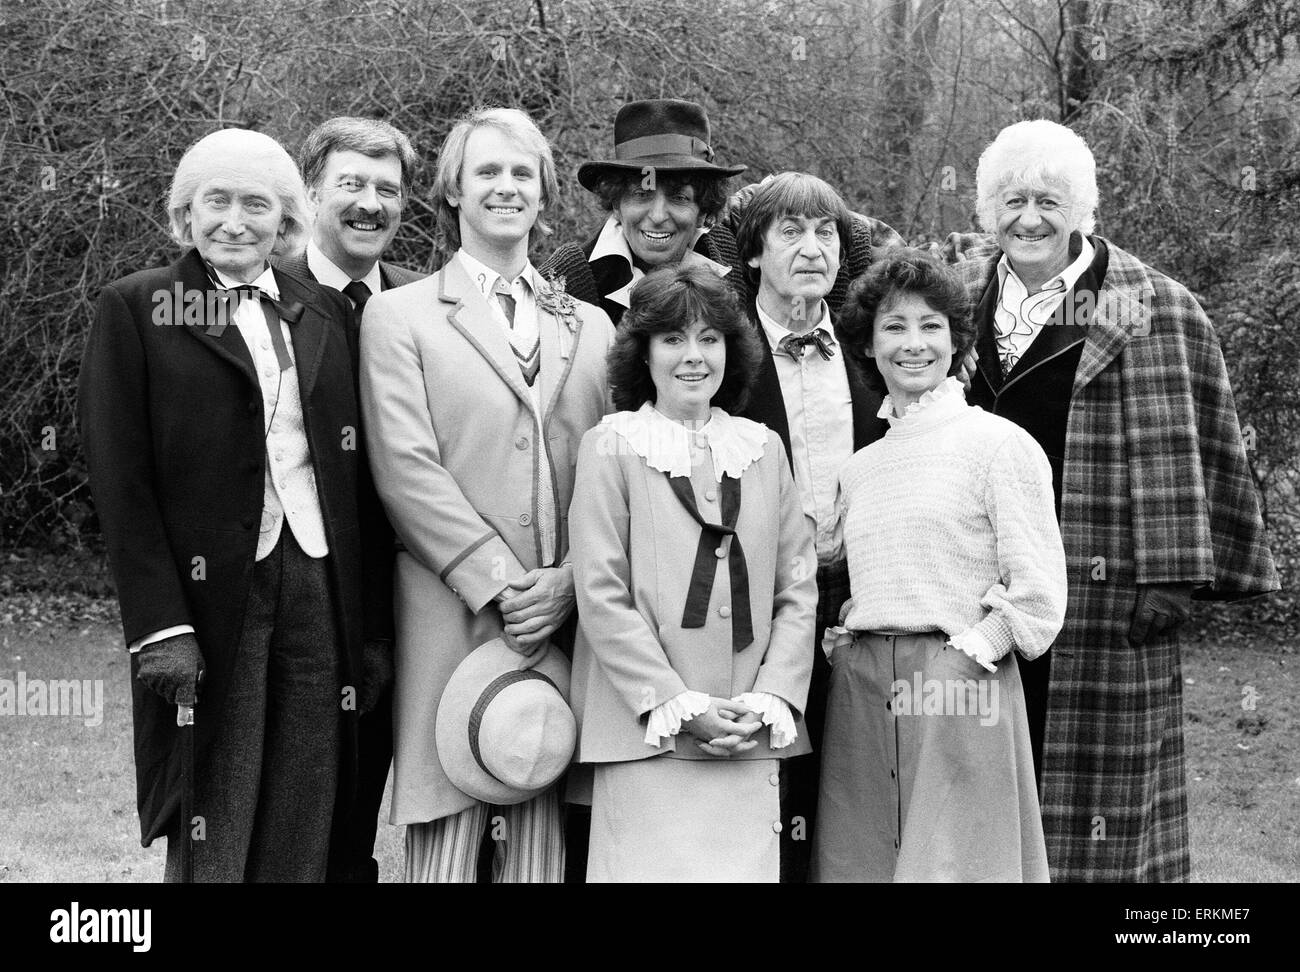 Photocall for special 90 minute Doctor Who episode titled 'The Five Doctors' which will celebrate 20 years - Stock Image